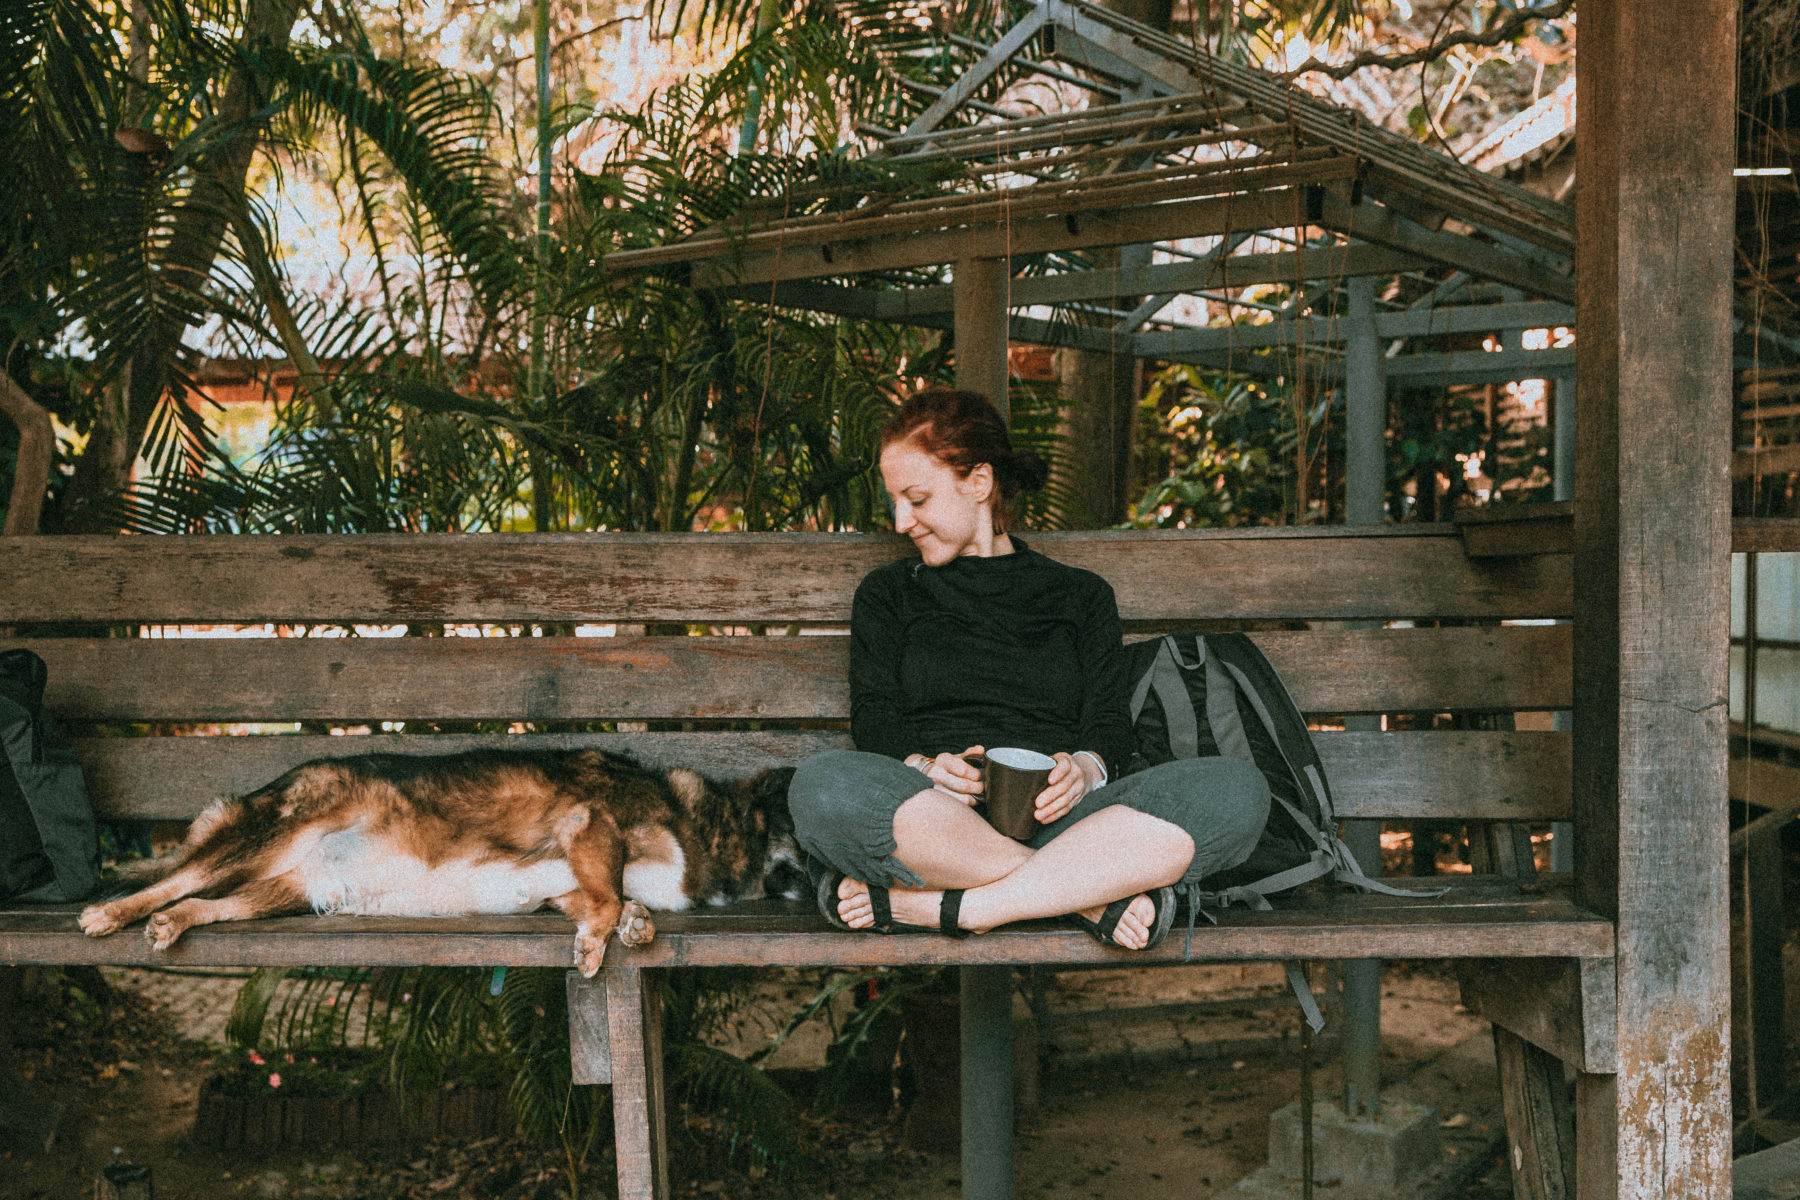 chilling next to sleeping dog and enjoying afternoon coffee elephant nature park thailand